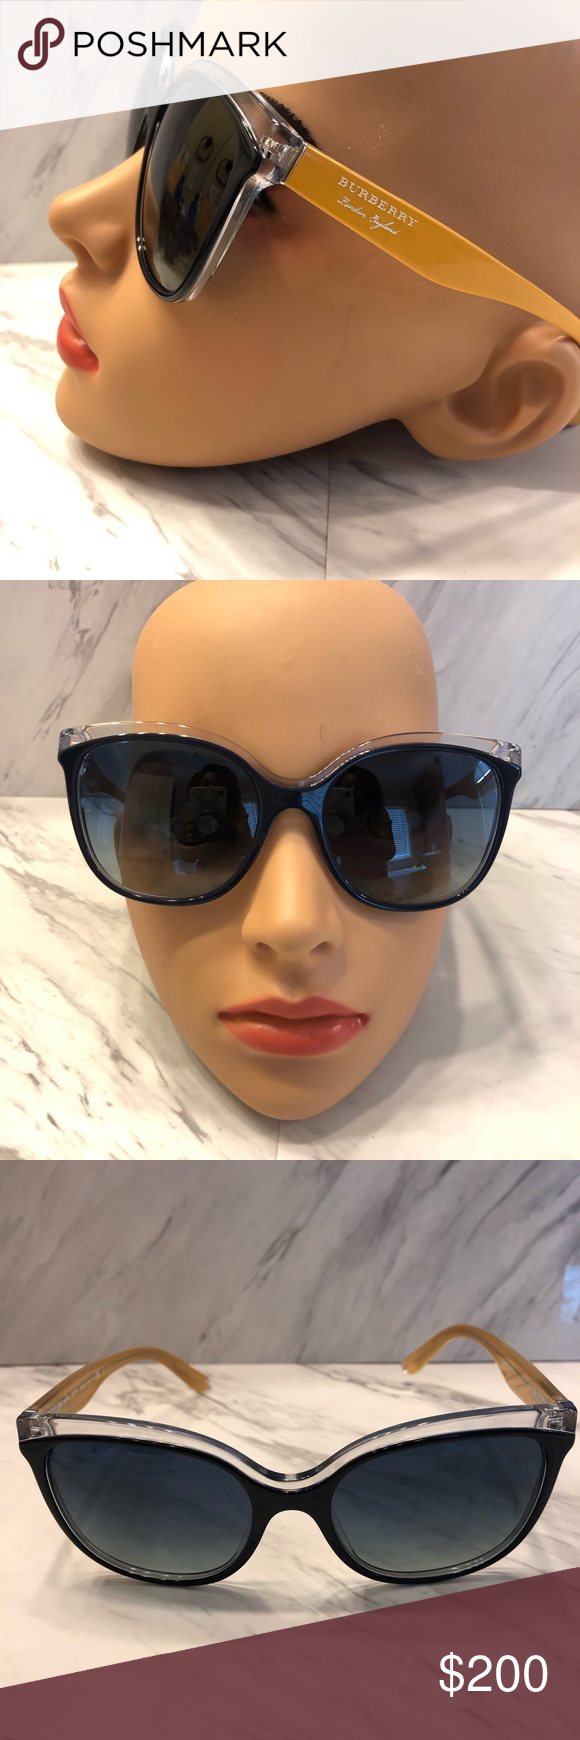 4623a8f51899 Authentic Burberry Sunglasses These Burberry sunglasses are absolutely  stunning! Cat-eye shape, gradient